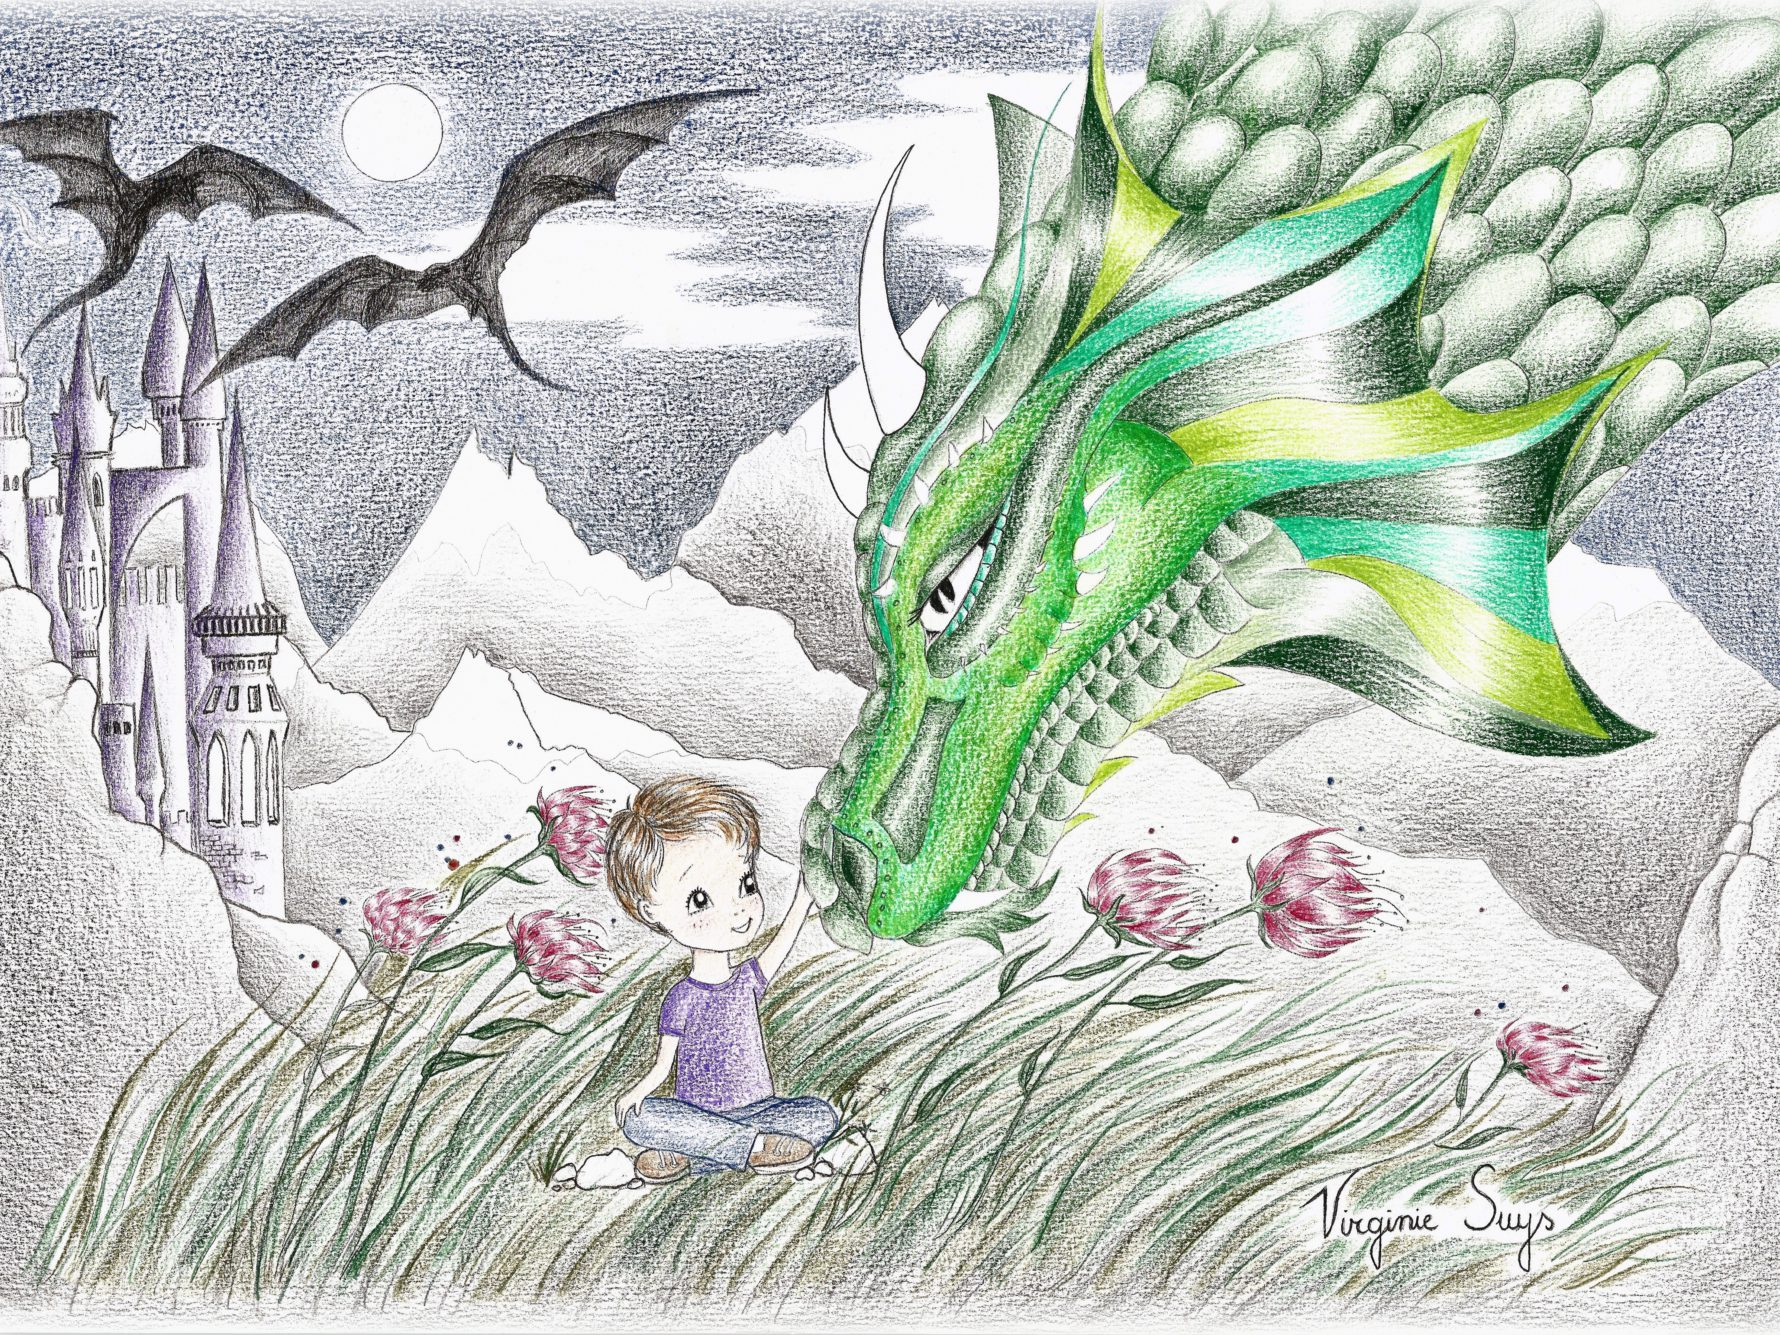 Virginie Suys Dragonboy in green purple illustration